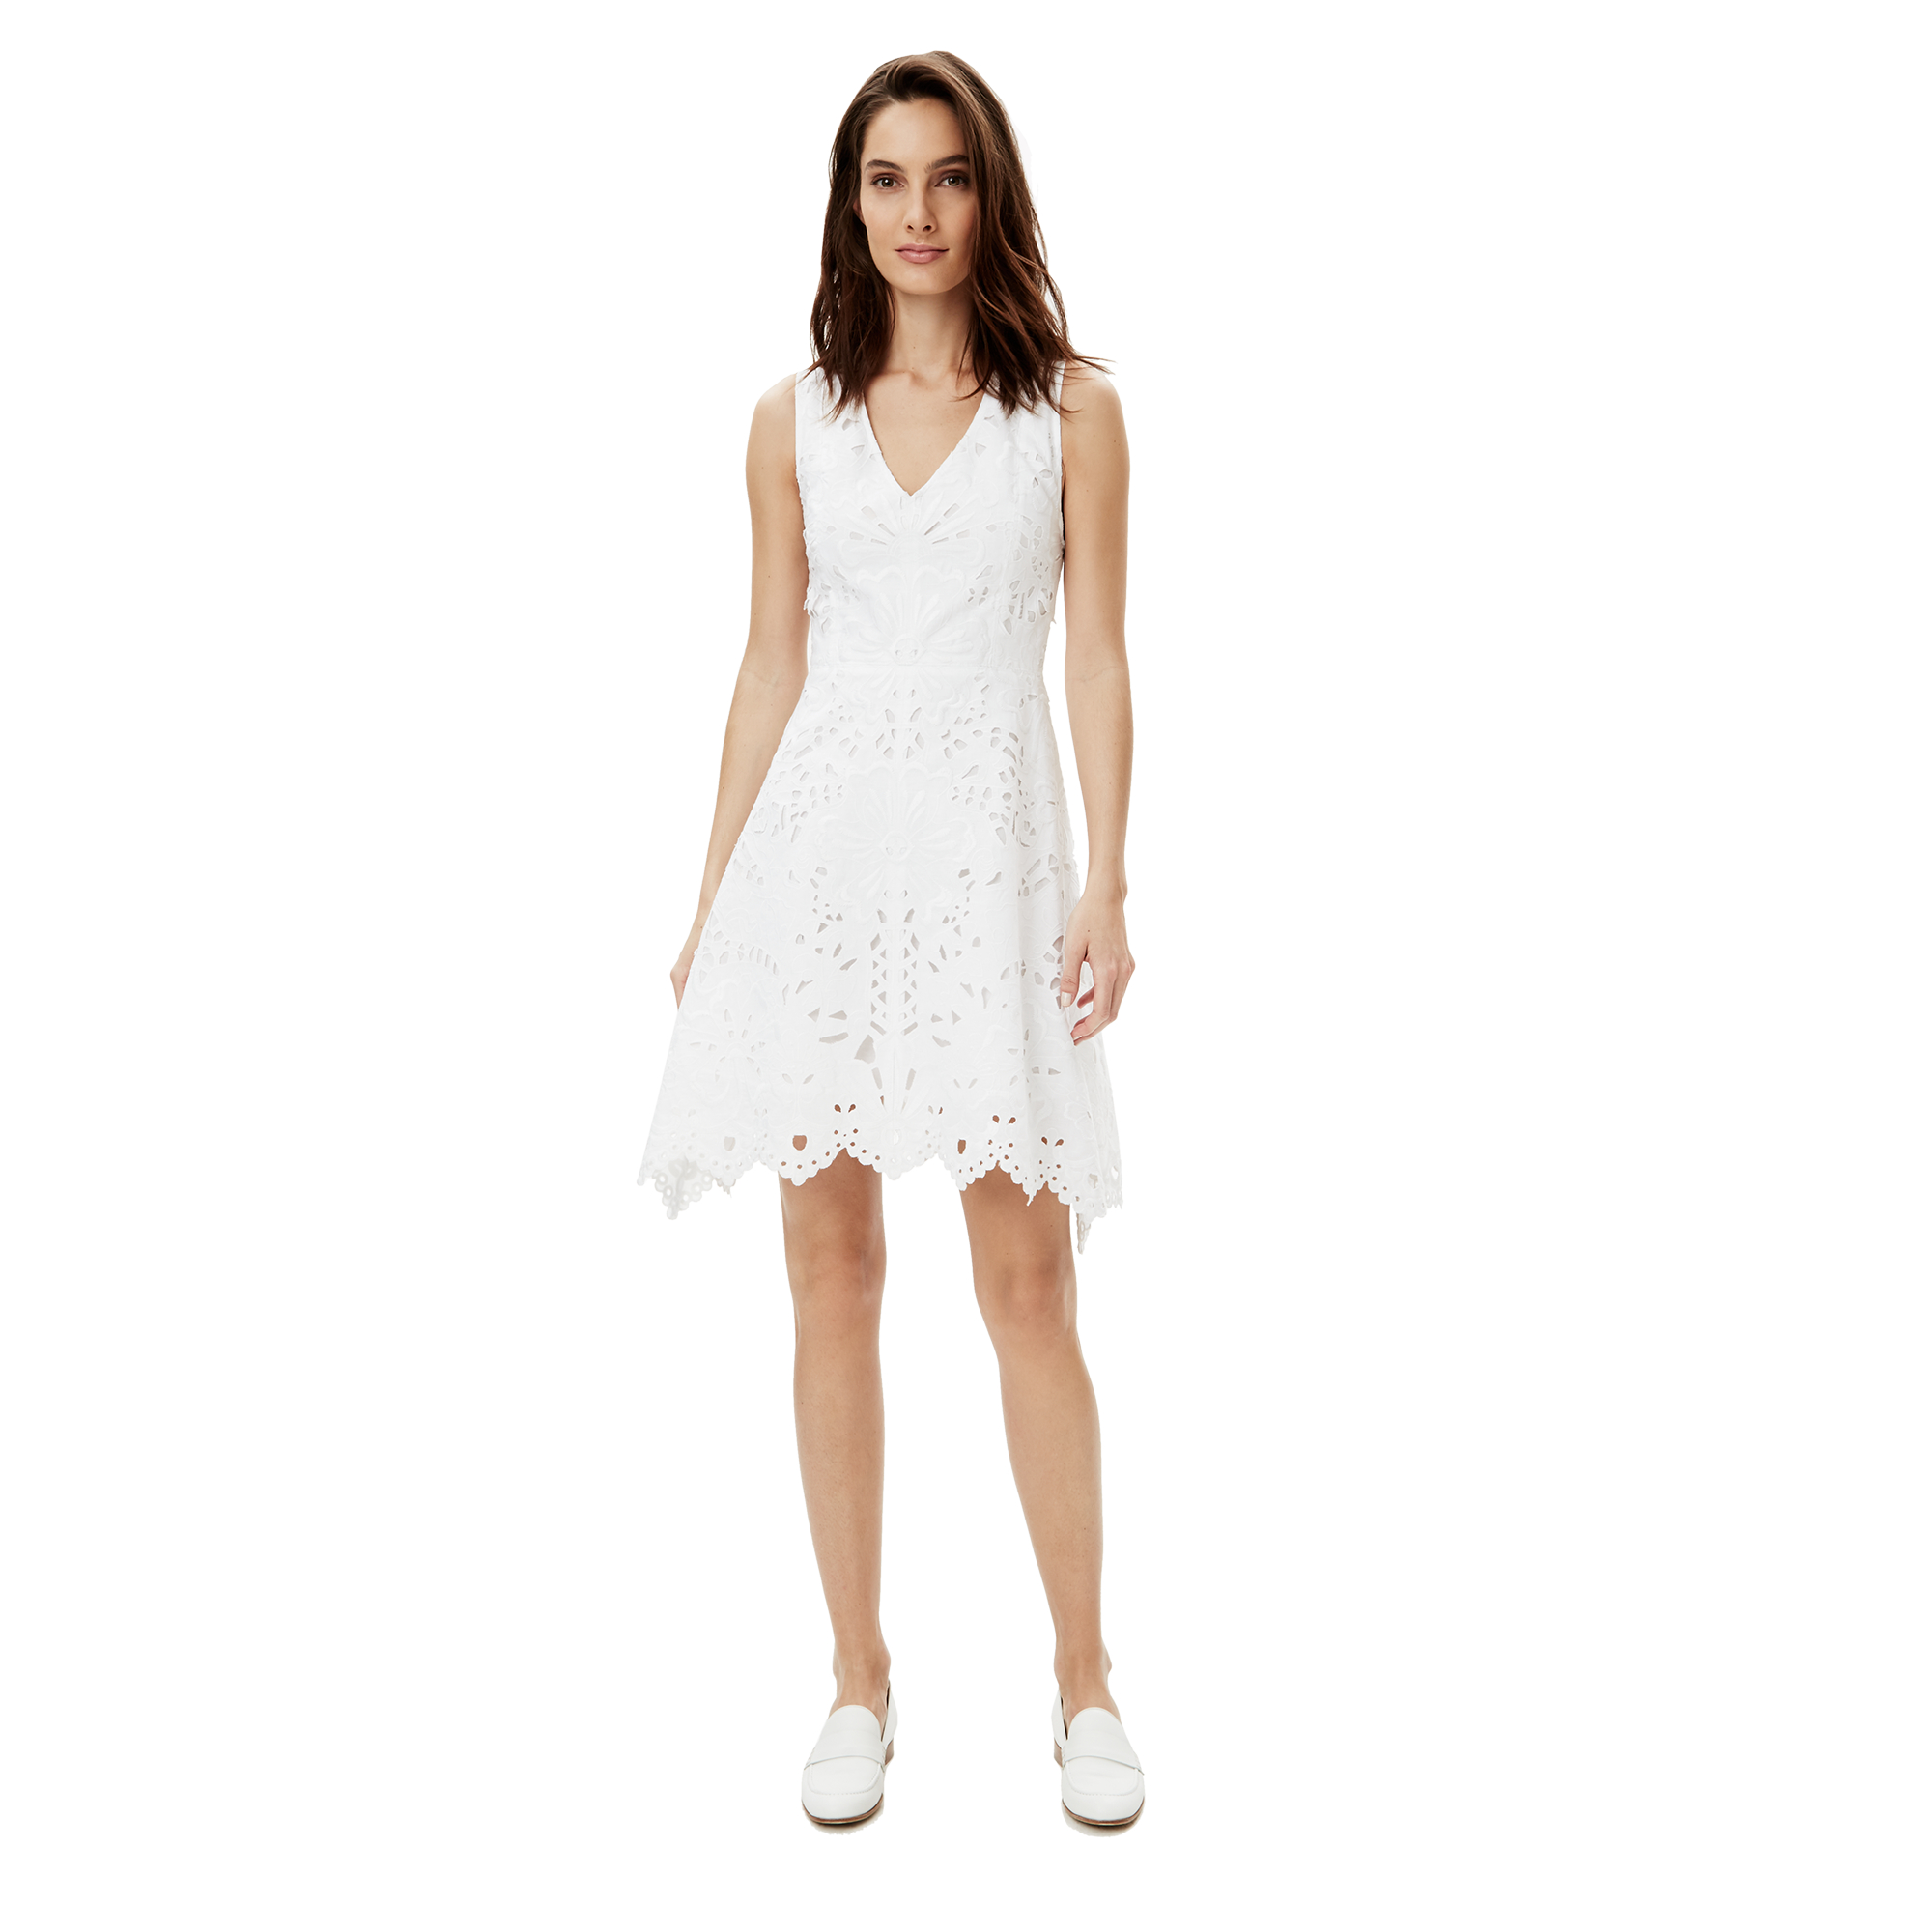 Cotton First Communion Dress Eyelet This Beautiful sleeveless embroidered eyelet cotton first communion dress with bow accent on waist is Fully lined. This Tea length cotton first communion dress includes a zipper closure and tie back and is quality Made in the USA.